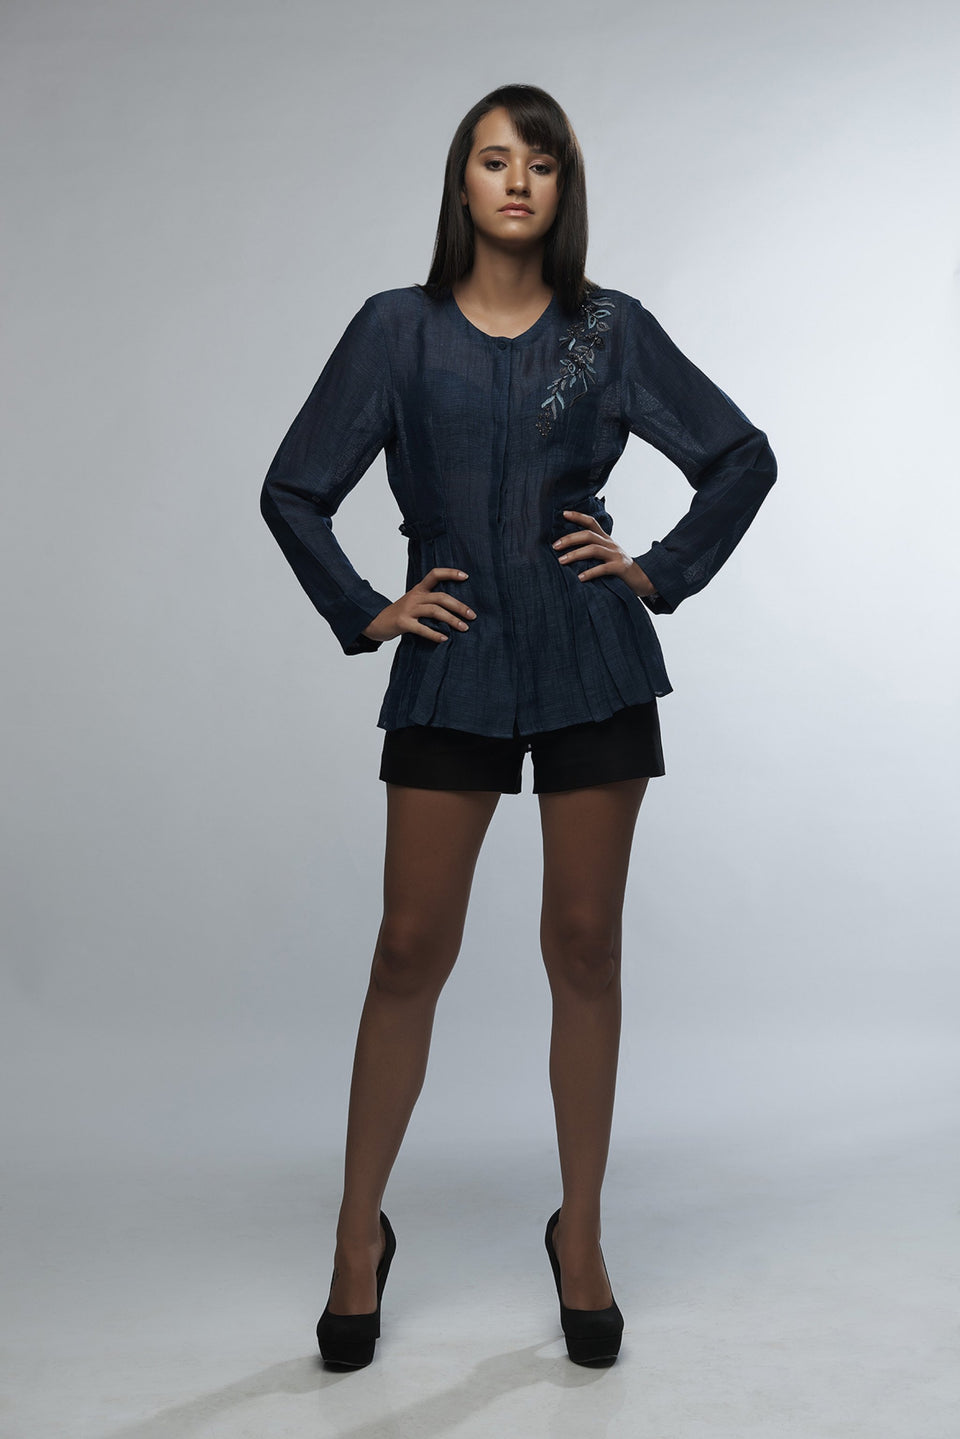 The Azure Blouse in Navy Blue